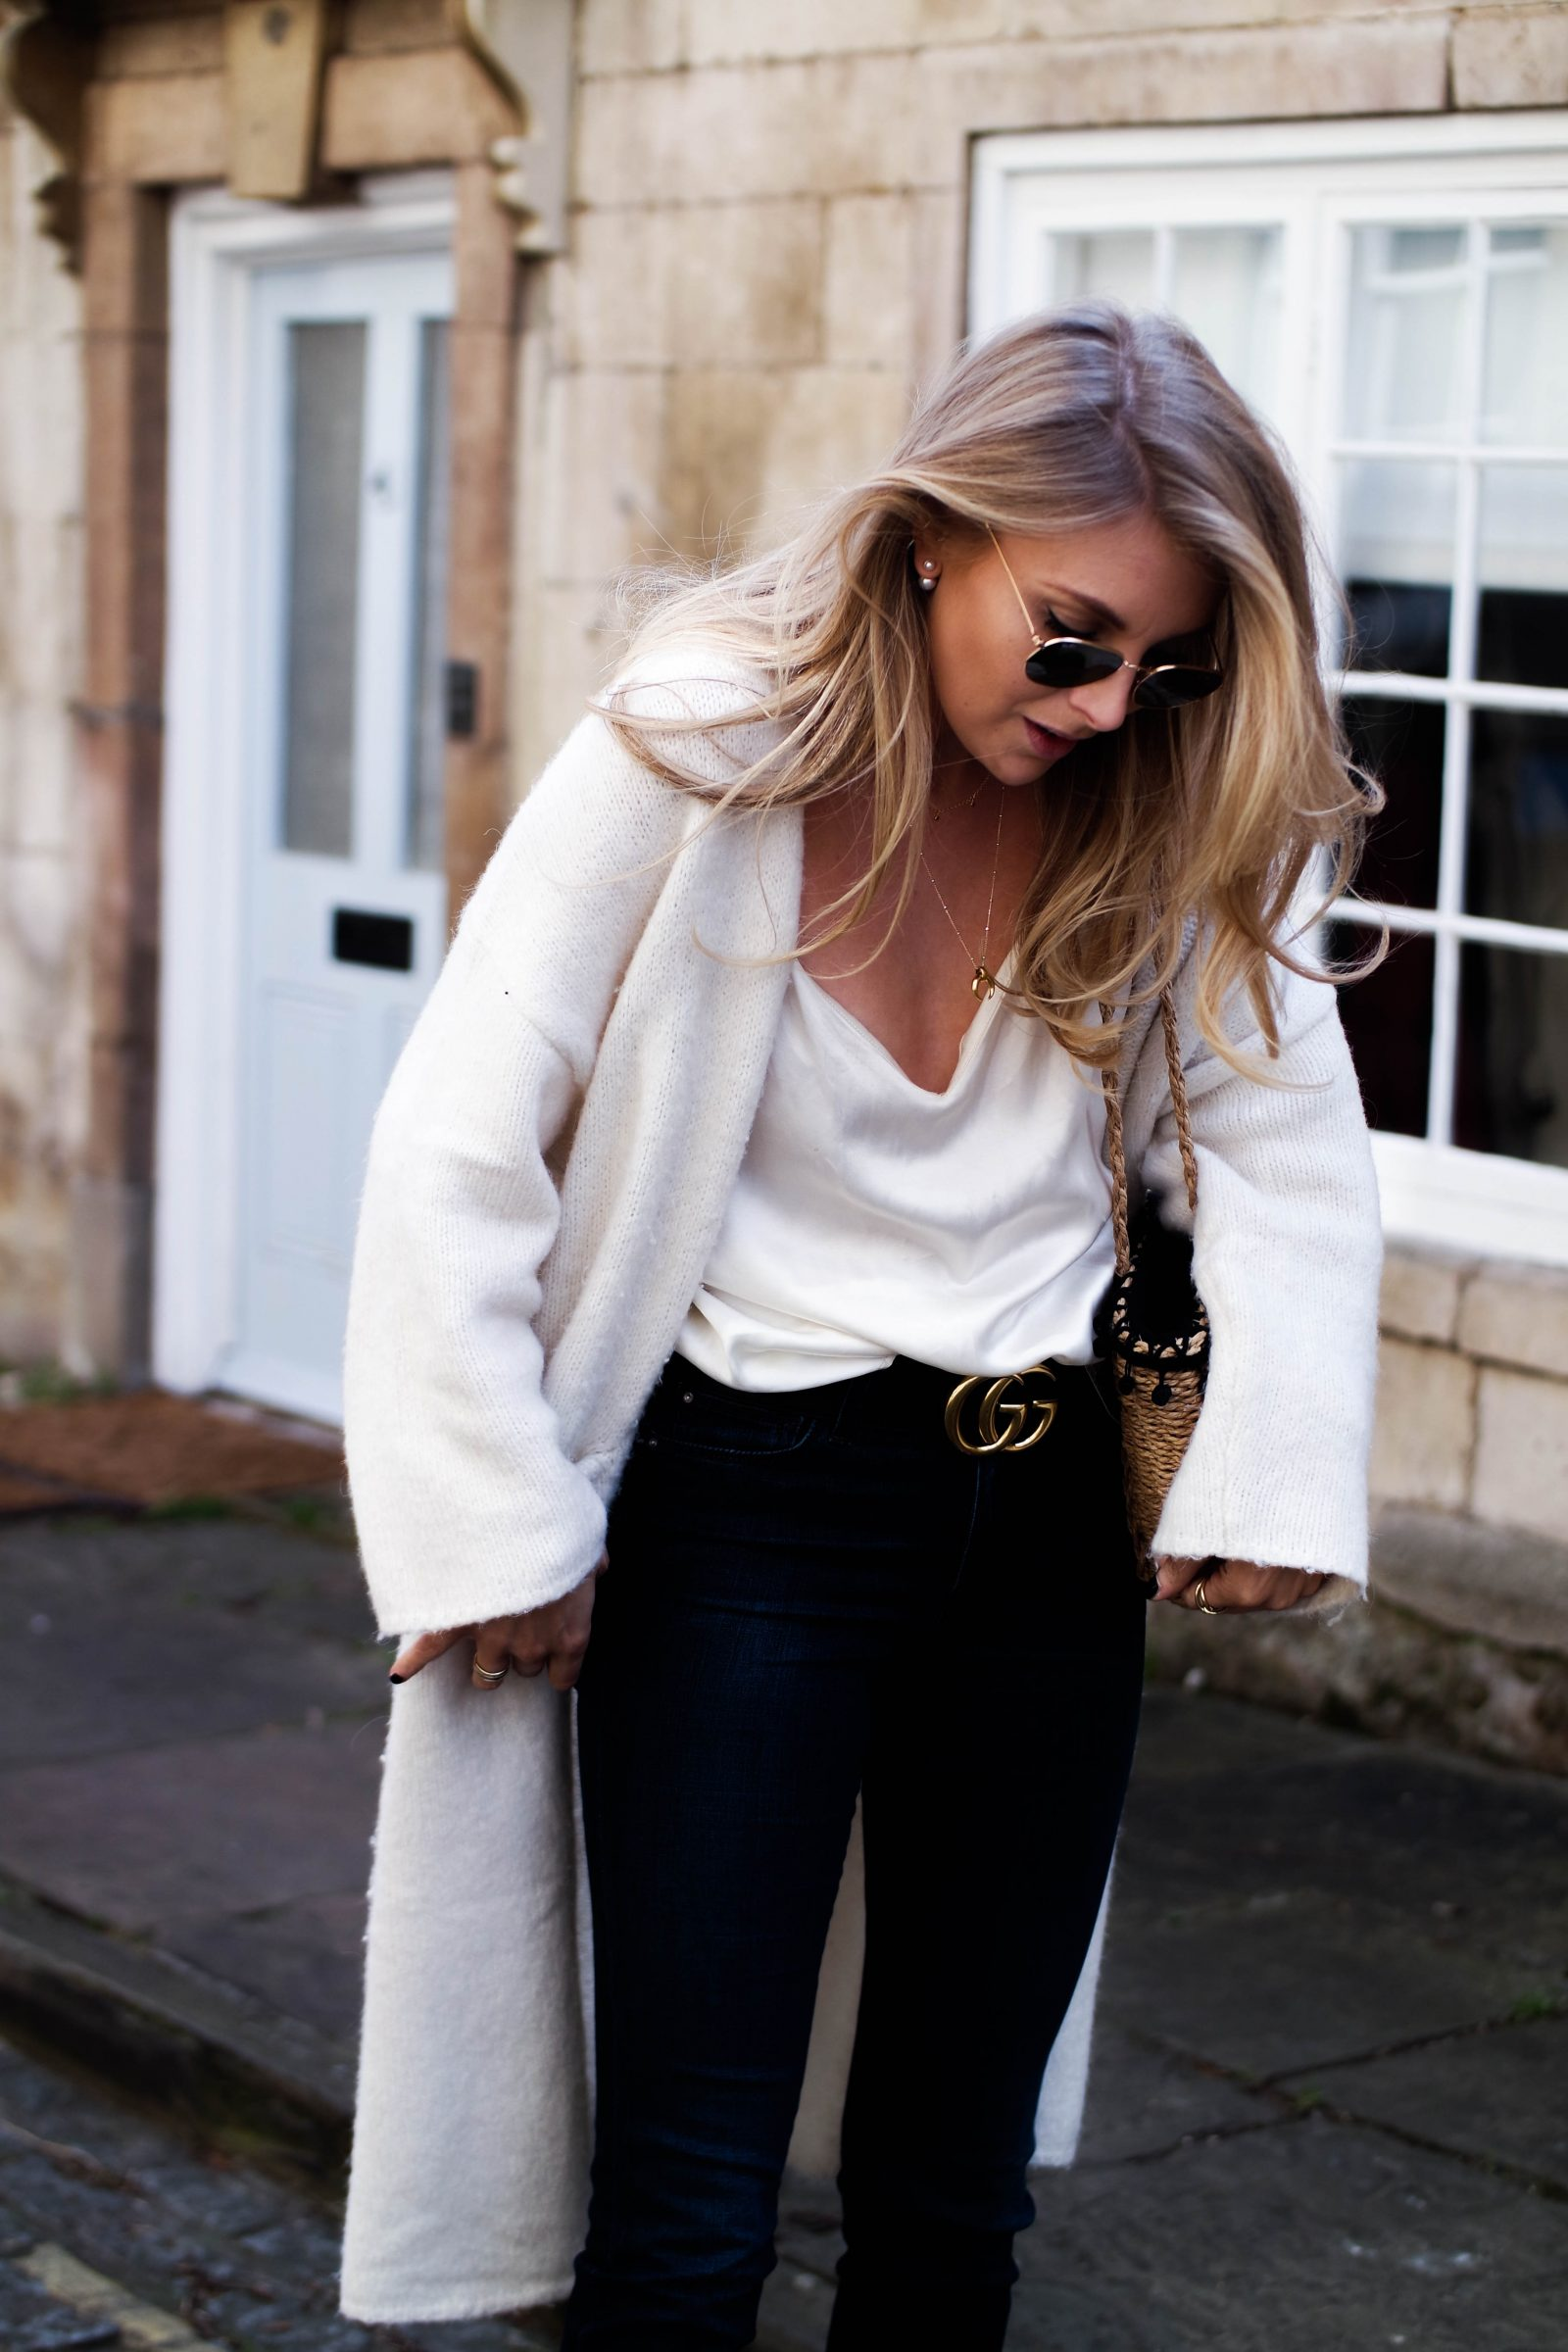 The New Denim - How To Wear Flares - Silk Cami